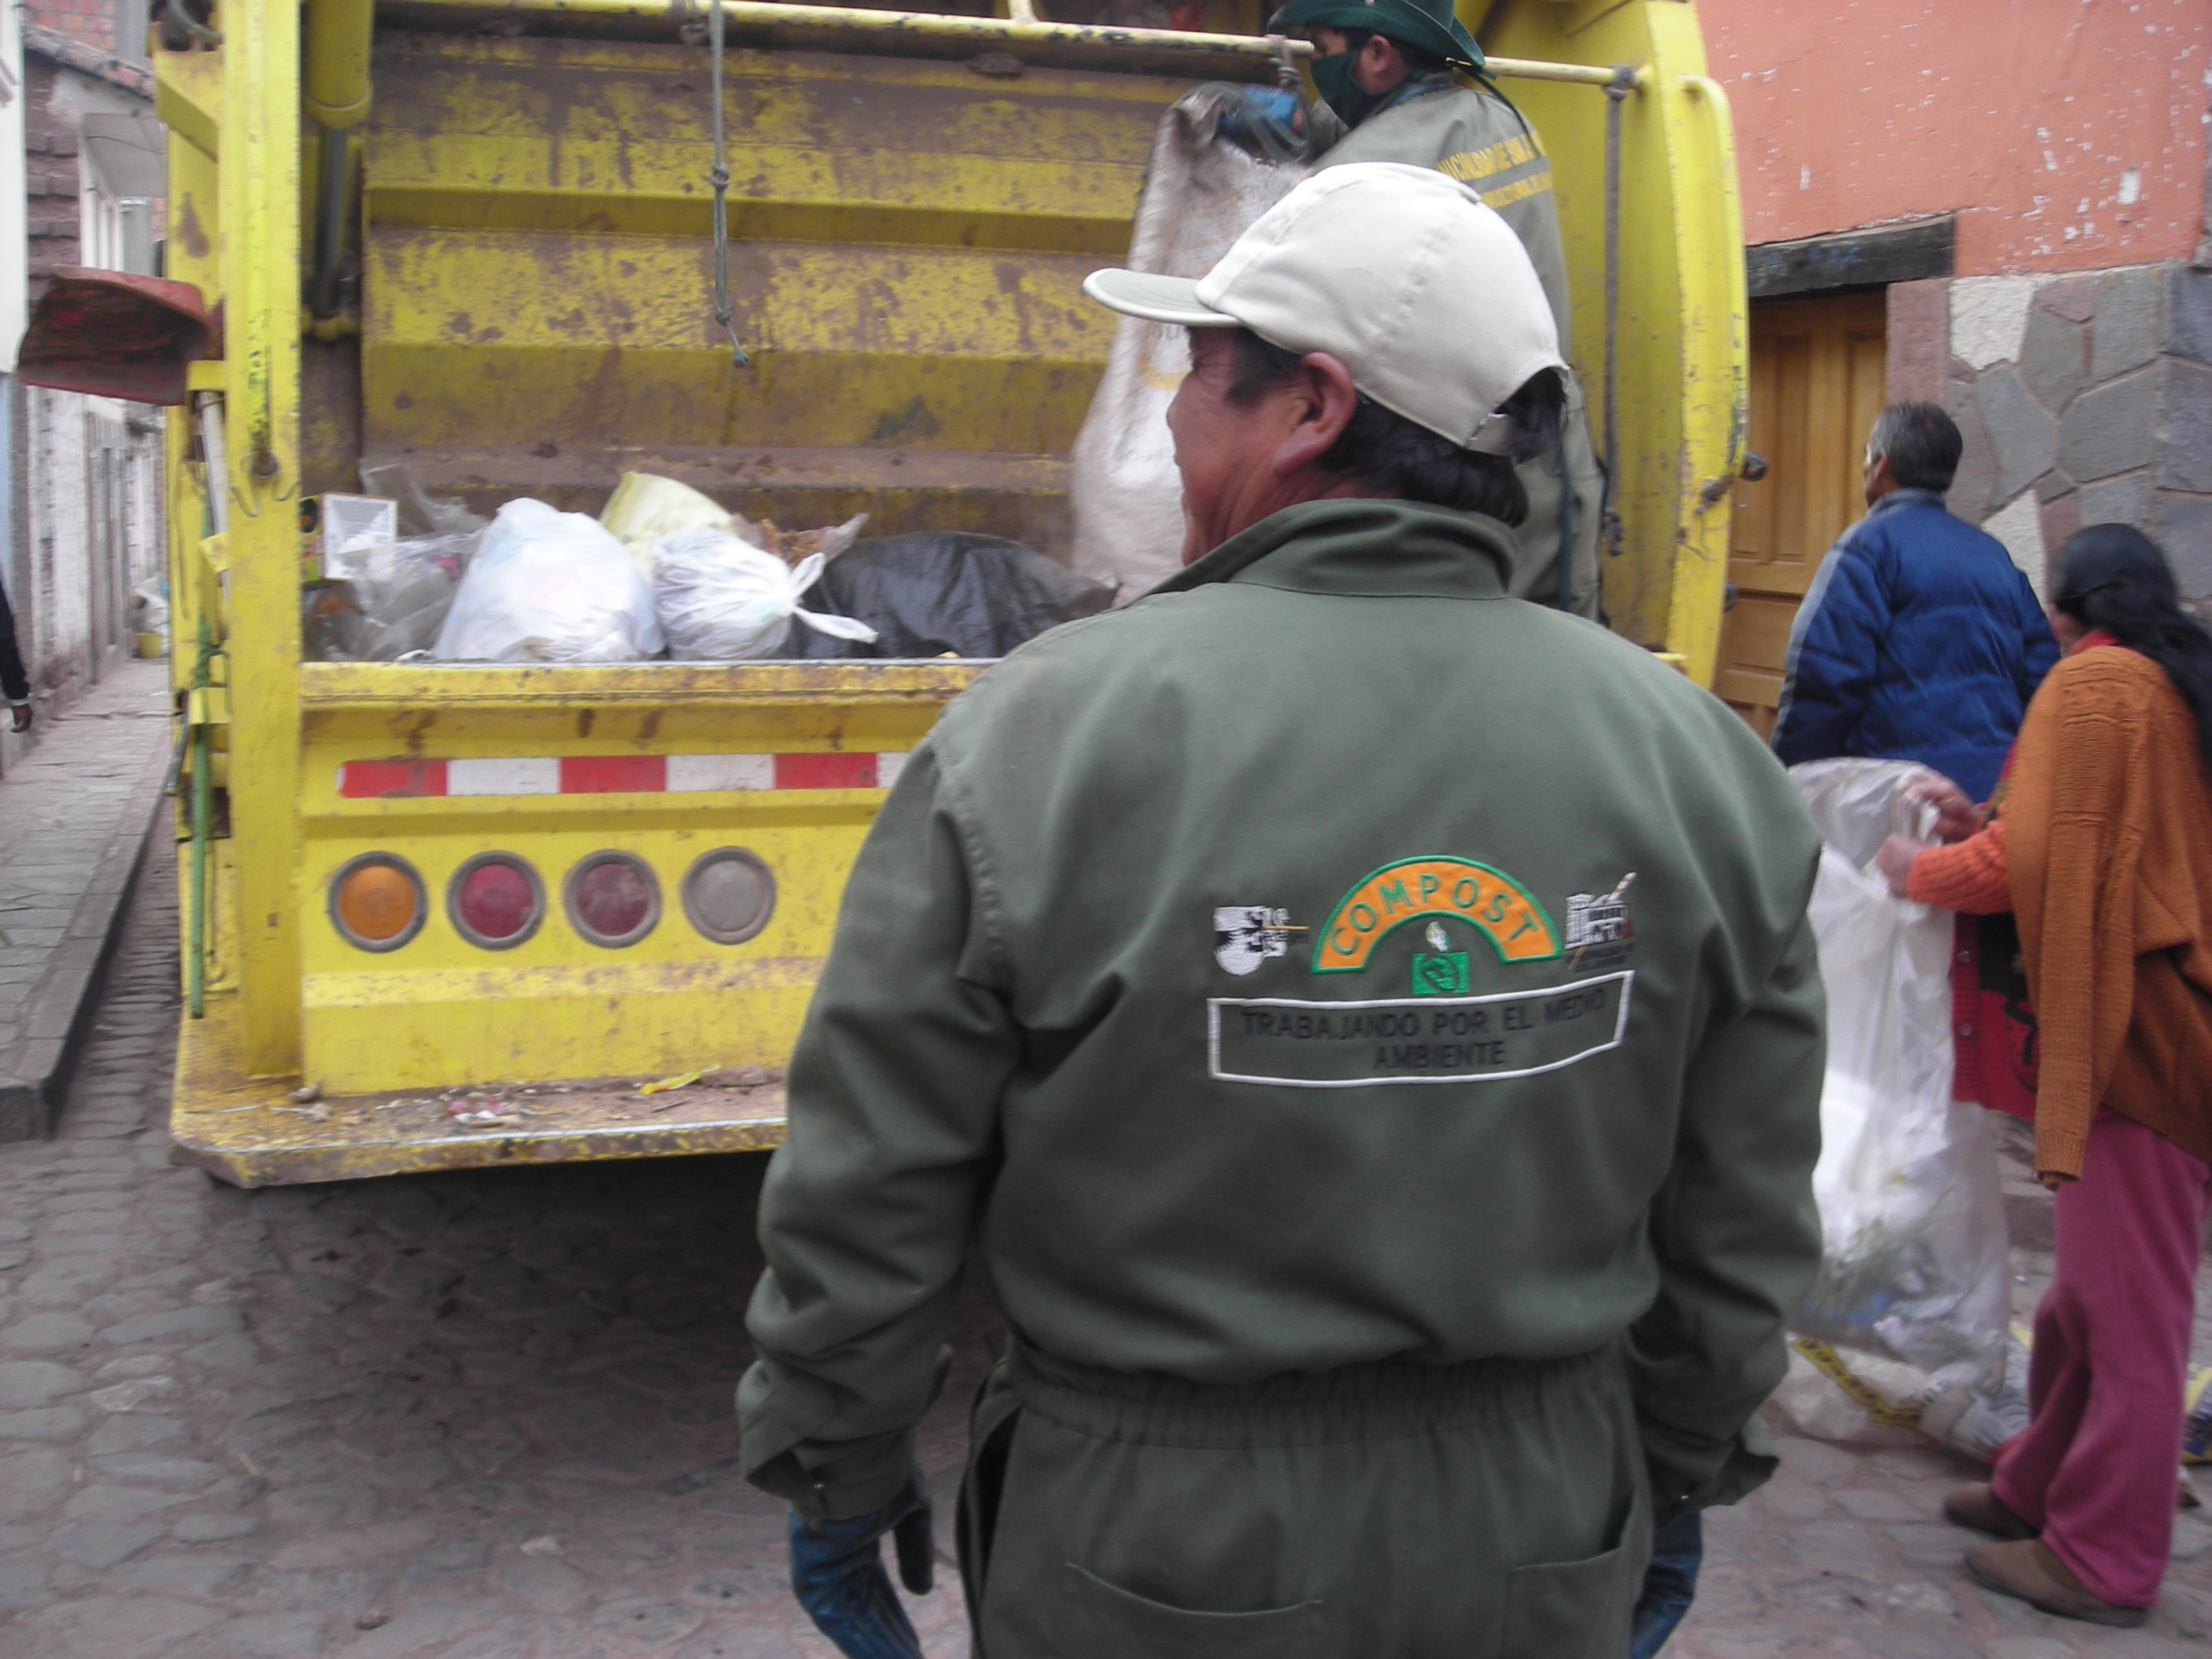 The municipal worker (he has both logos of Edegem and of his own municipality at the back) – Compost Â– Trabajando por el medio ambiente